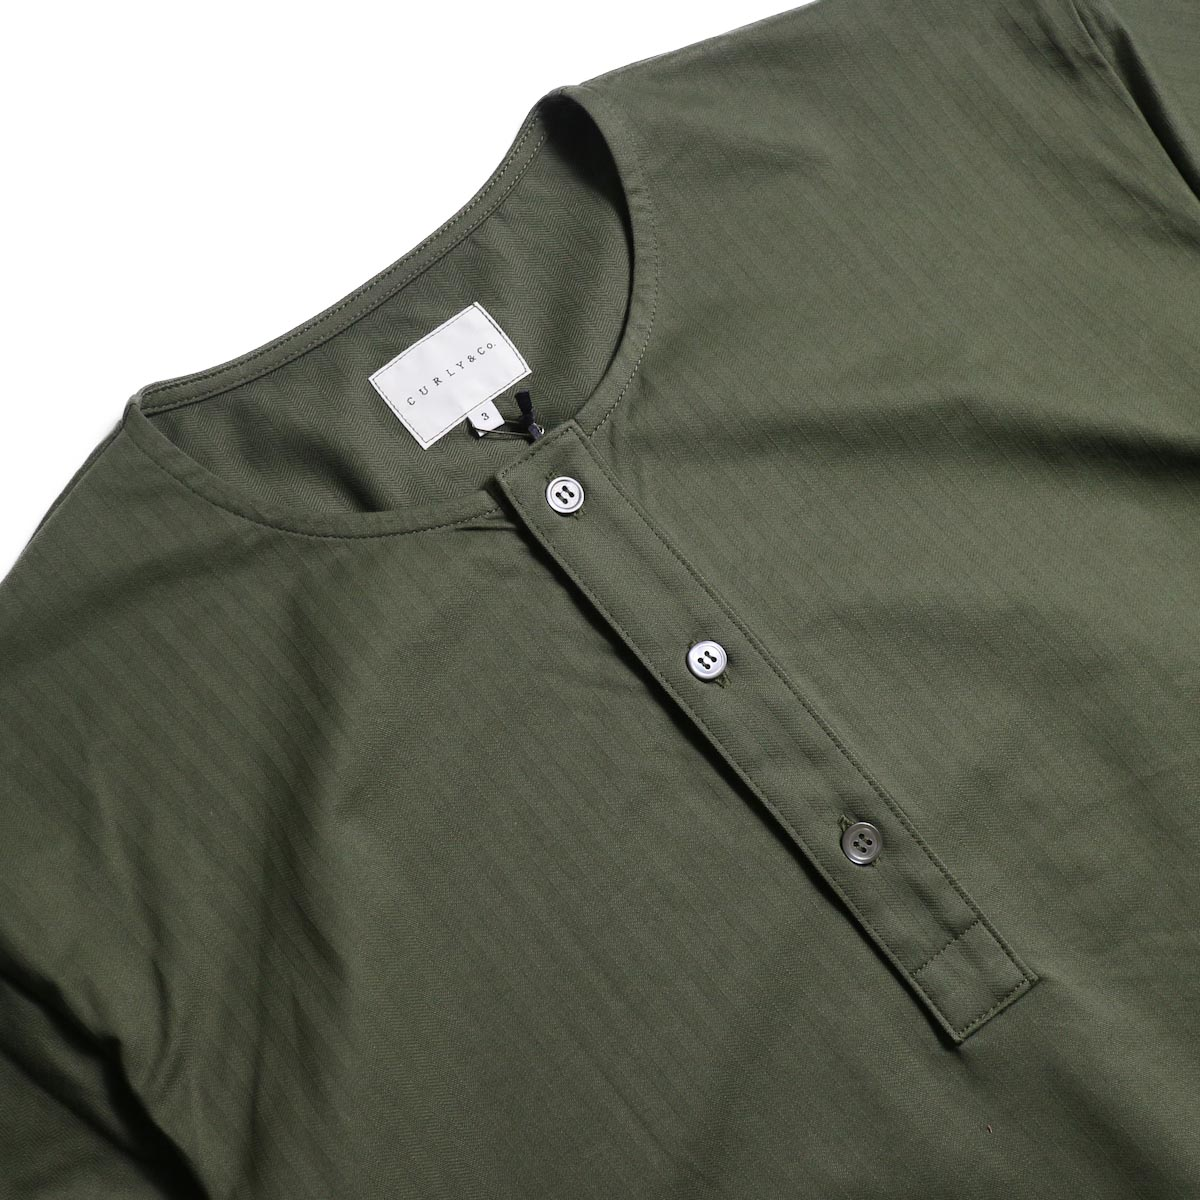 CURLY / SALFORD 3B SS HENLEY (Olive HB)3Bヘンリー